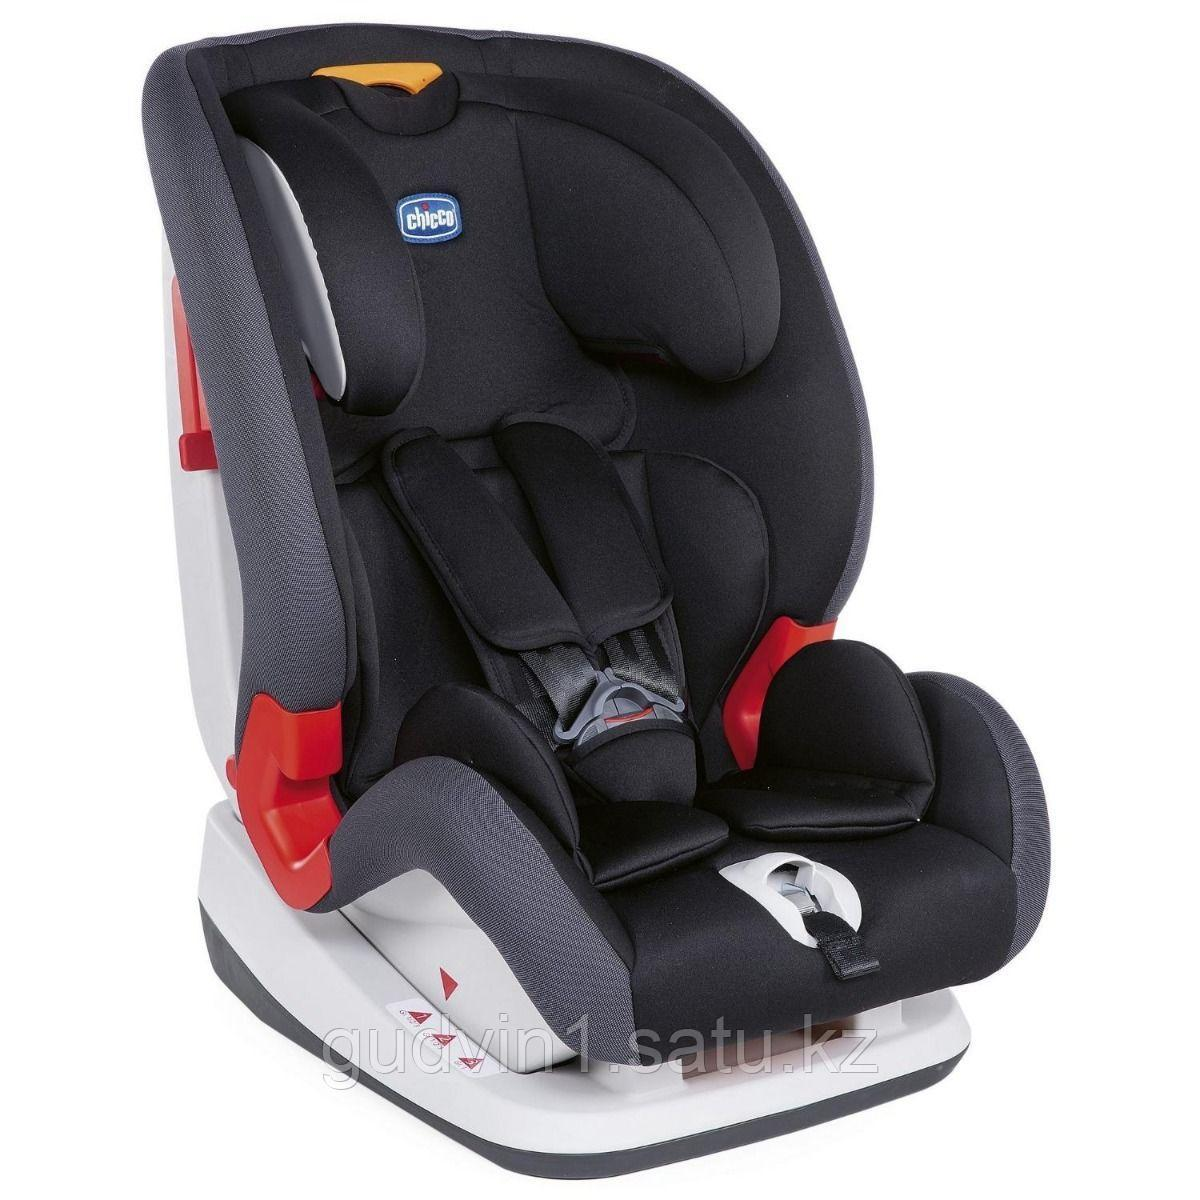 Chicco: Автокресло Youniverse Jet Black (9-36 kg) 12+